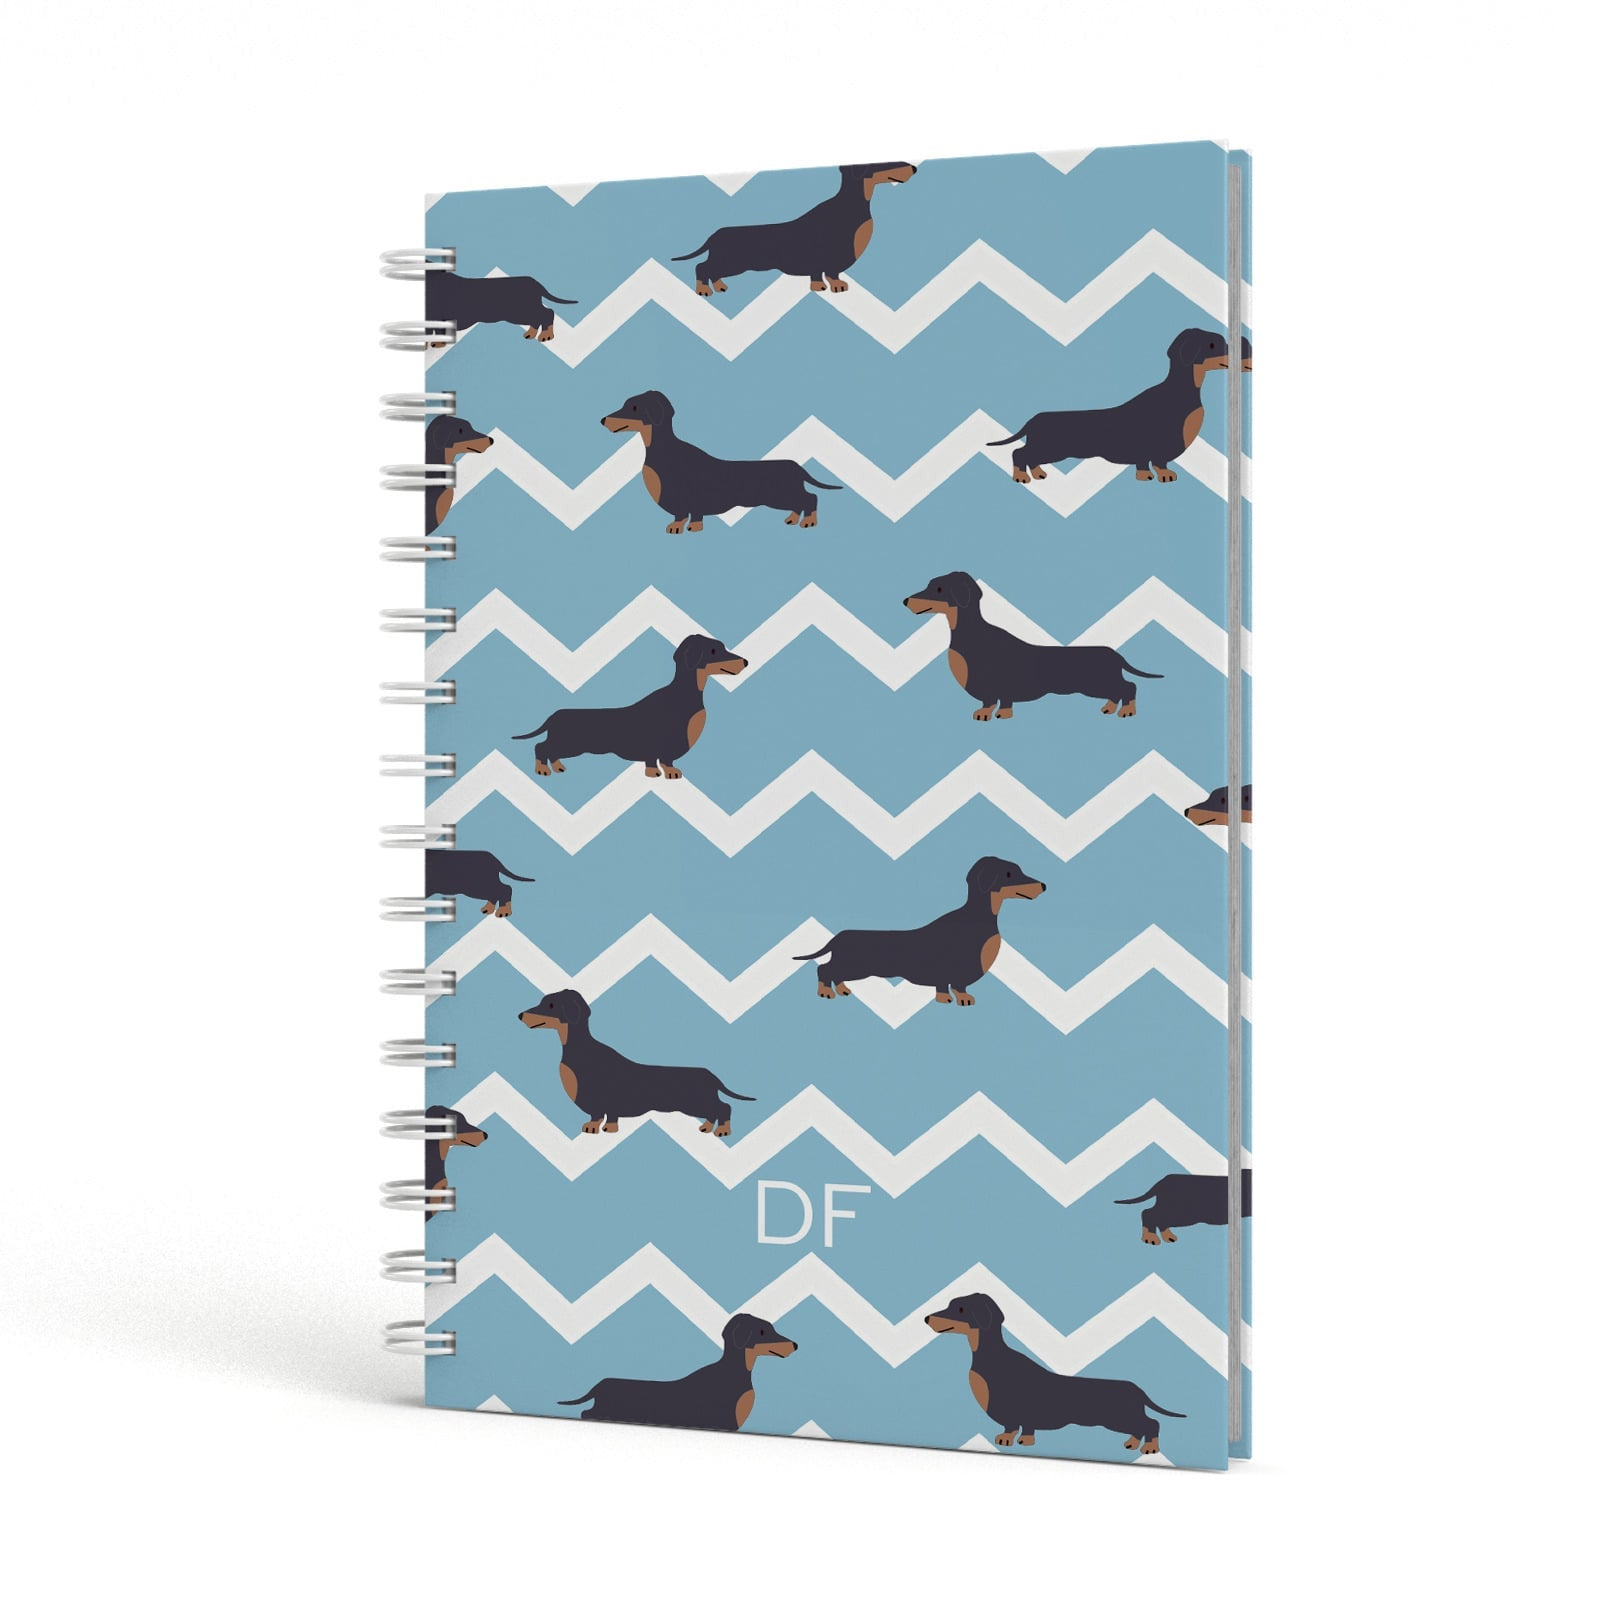 Personalised Dachshund A5 Hardcover Notebook Side View